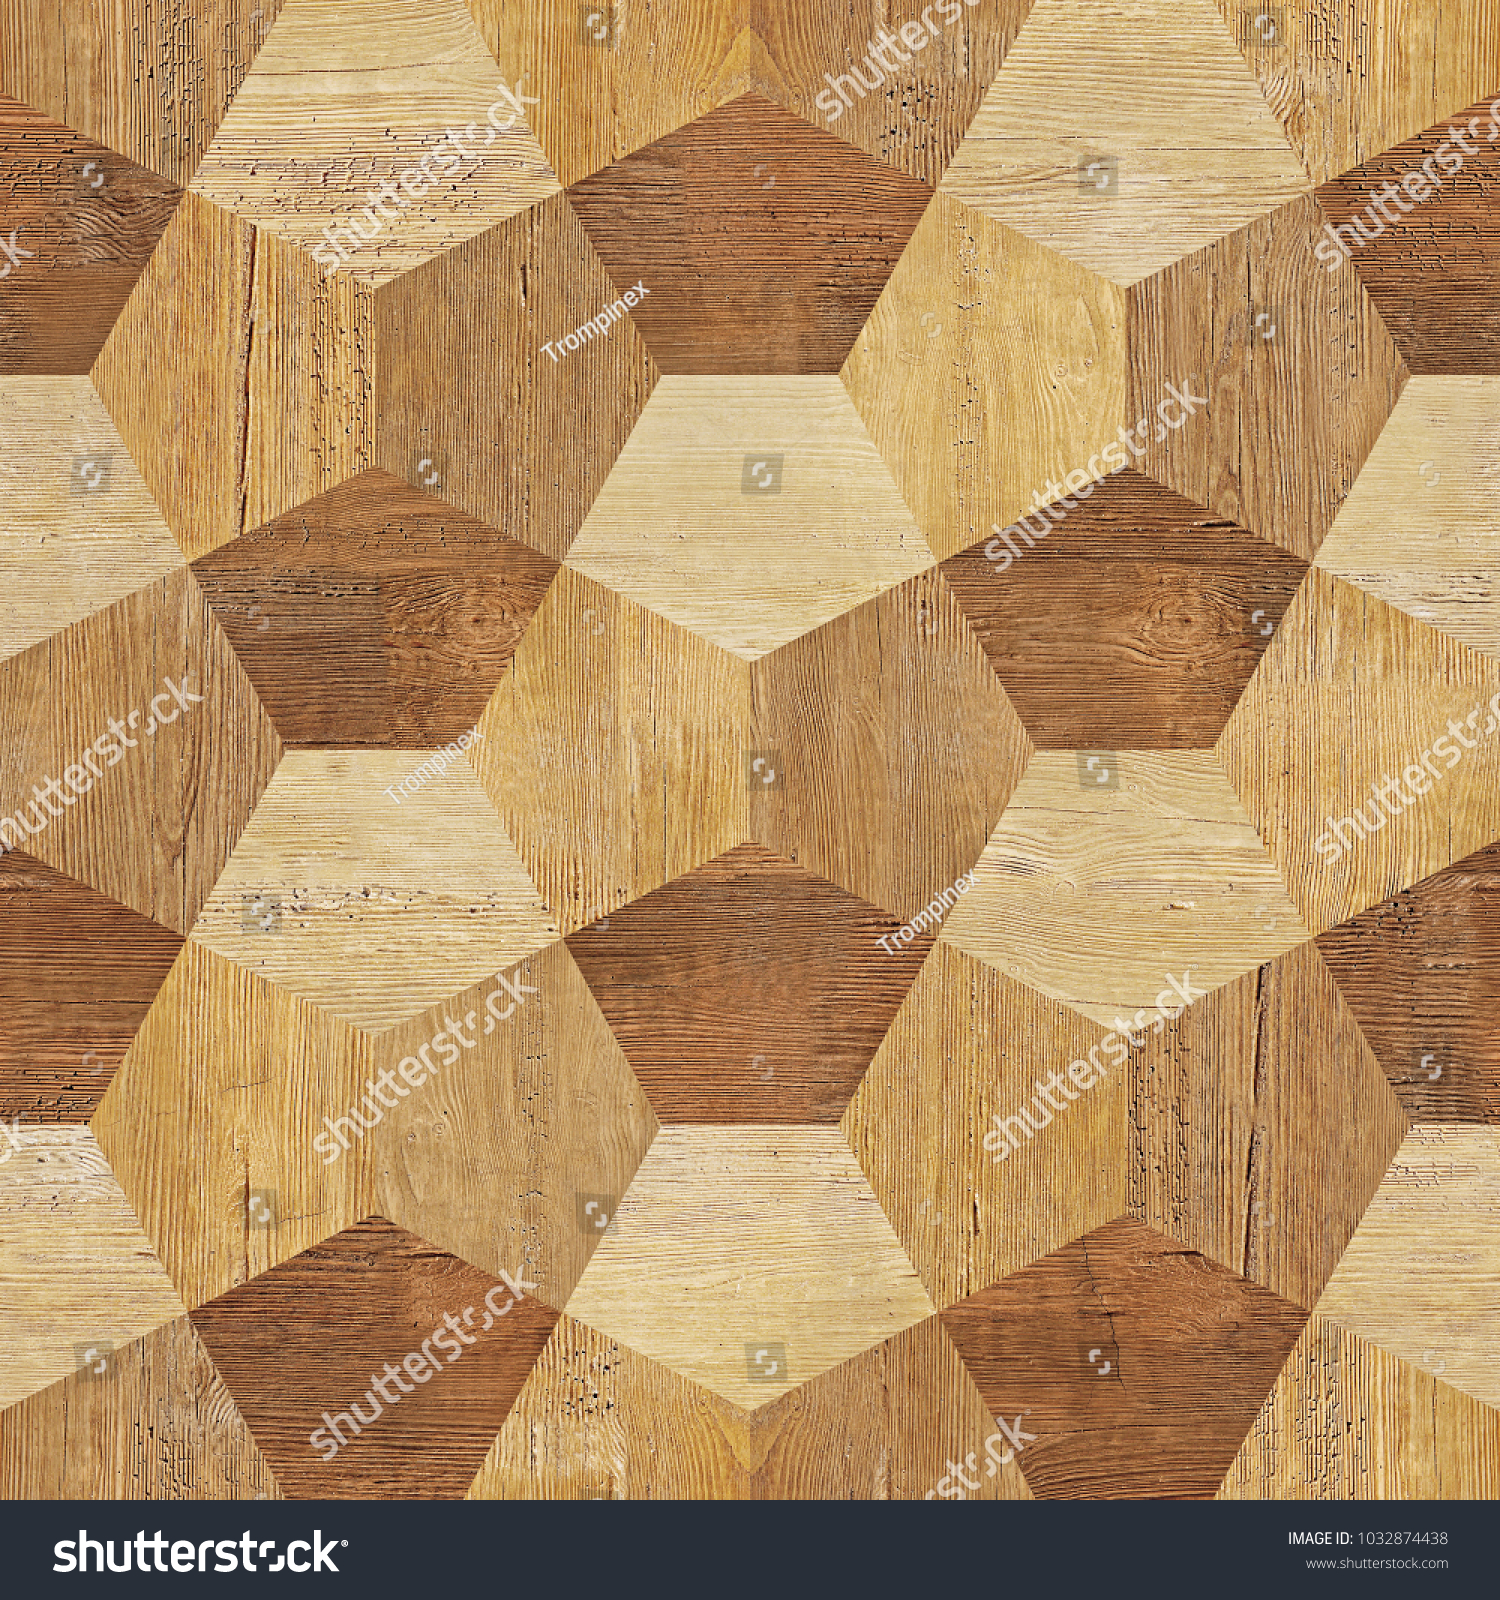 Comfortable Decorative Wood Paneling For Walls Images - The Wall Art ...